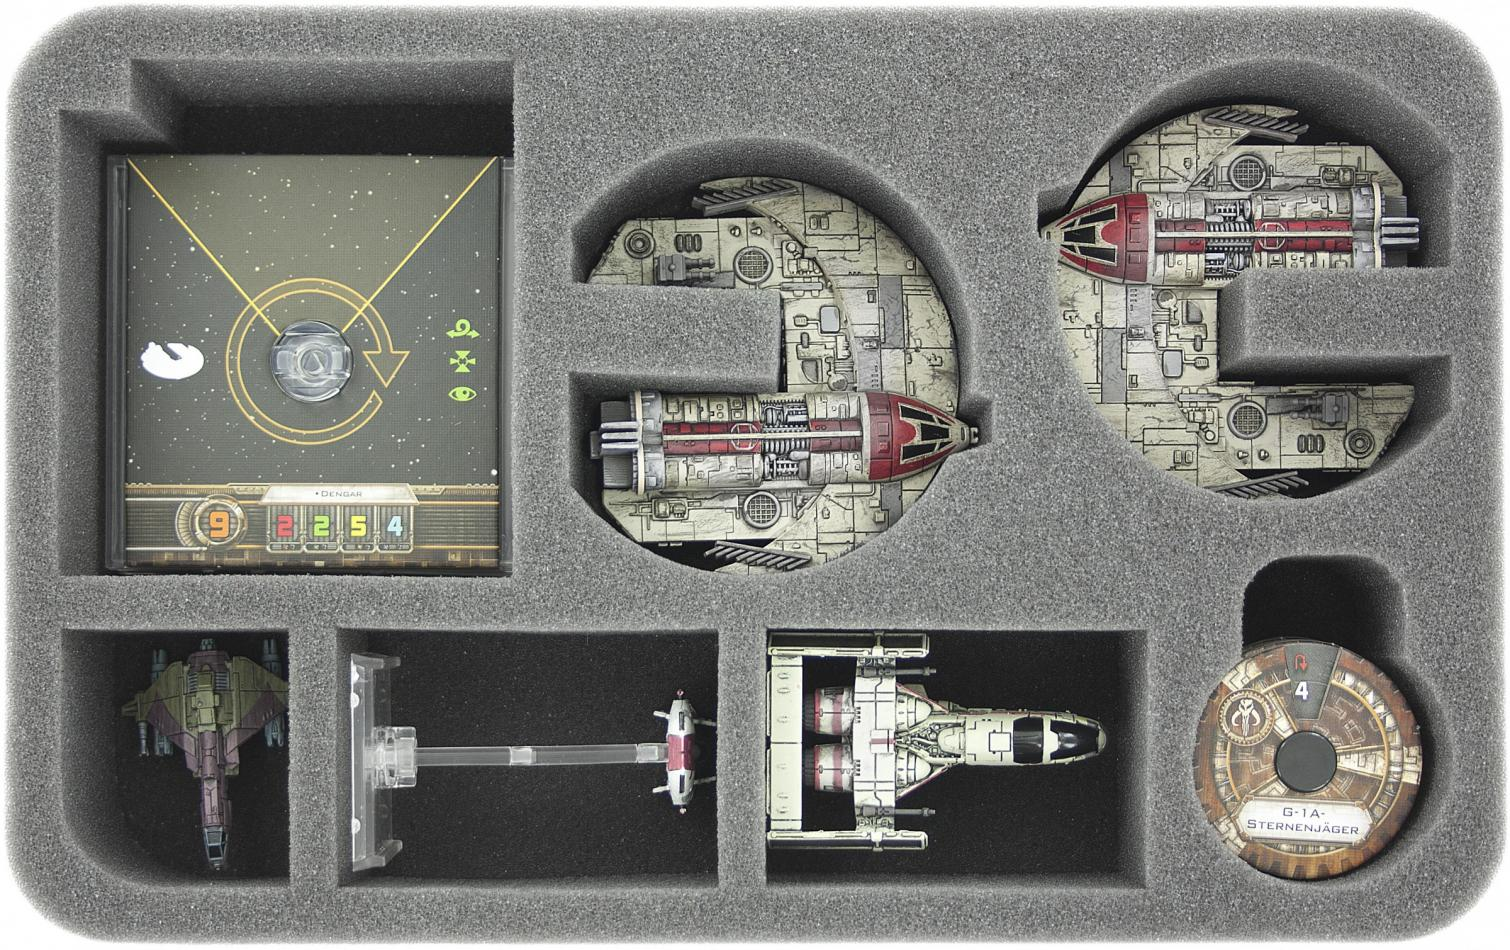 HSEH050BO foam tray for Star Wars X-WING 2 x Punishing One, 3 ships and accessories